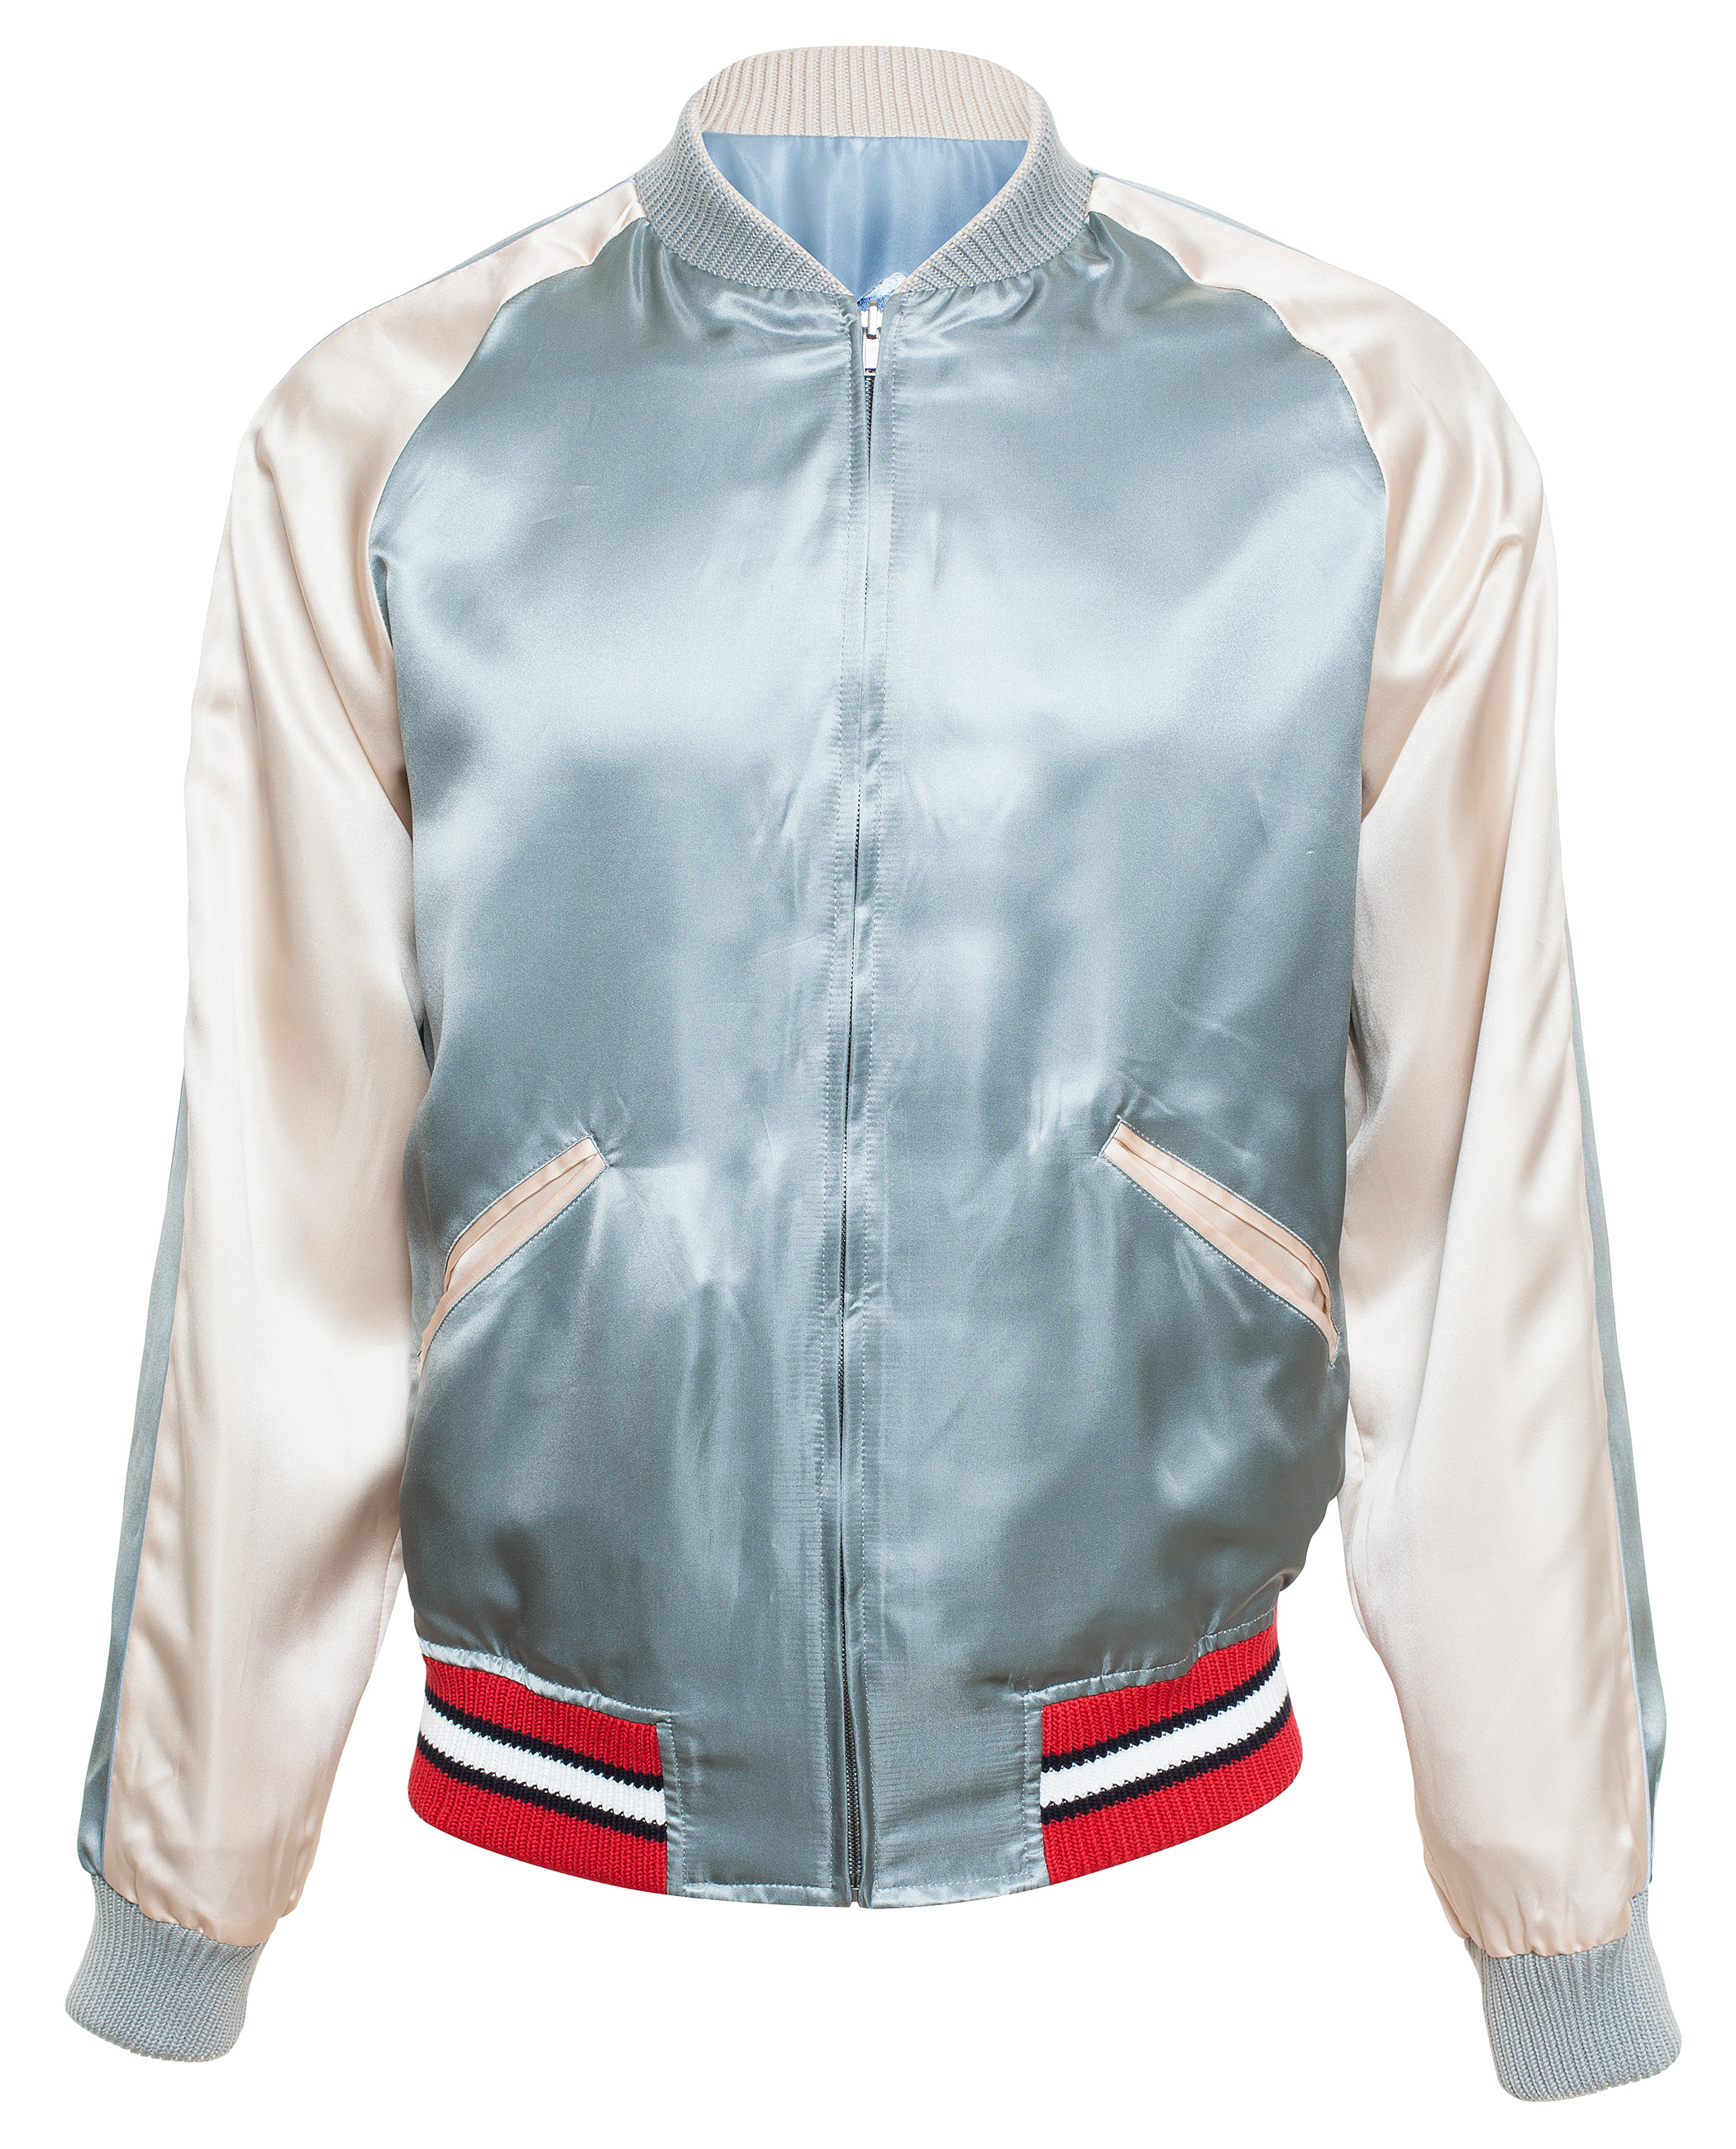 275f23d54 Gucci Reversible Satin Bomber Jacket in Blue for Men - Lyst